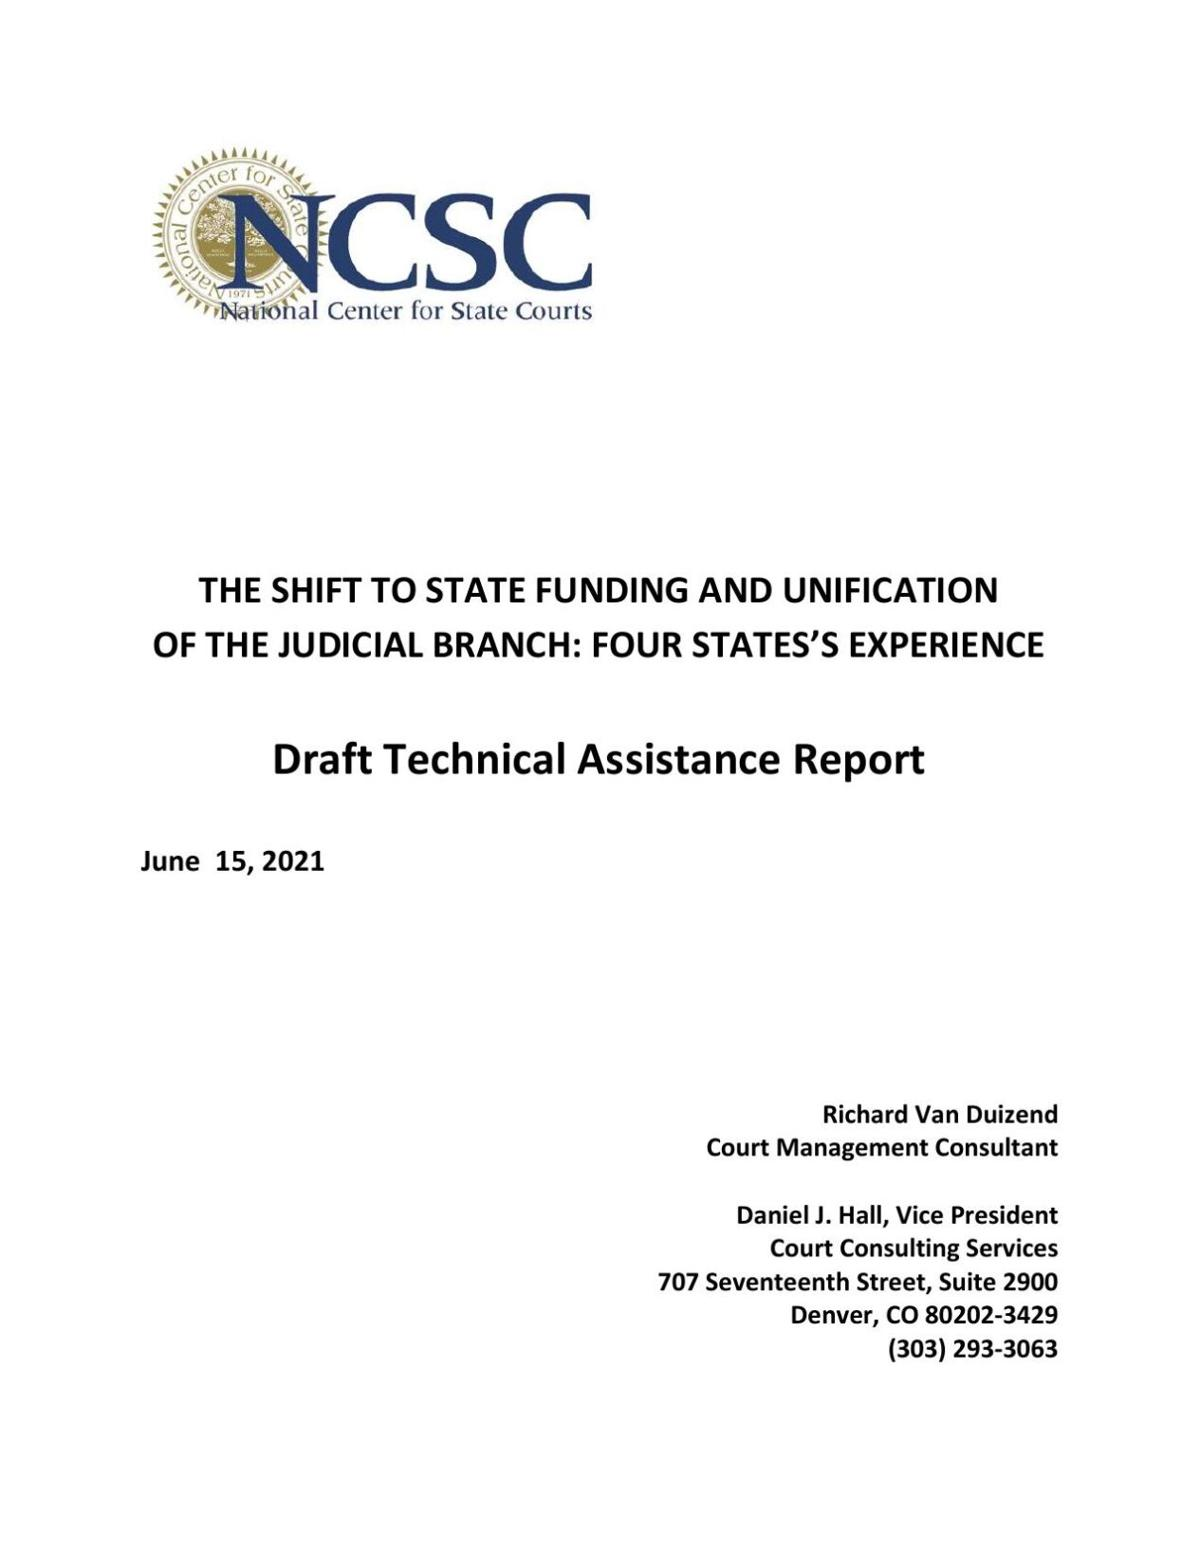 National Center for State Courts draft report